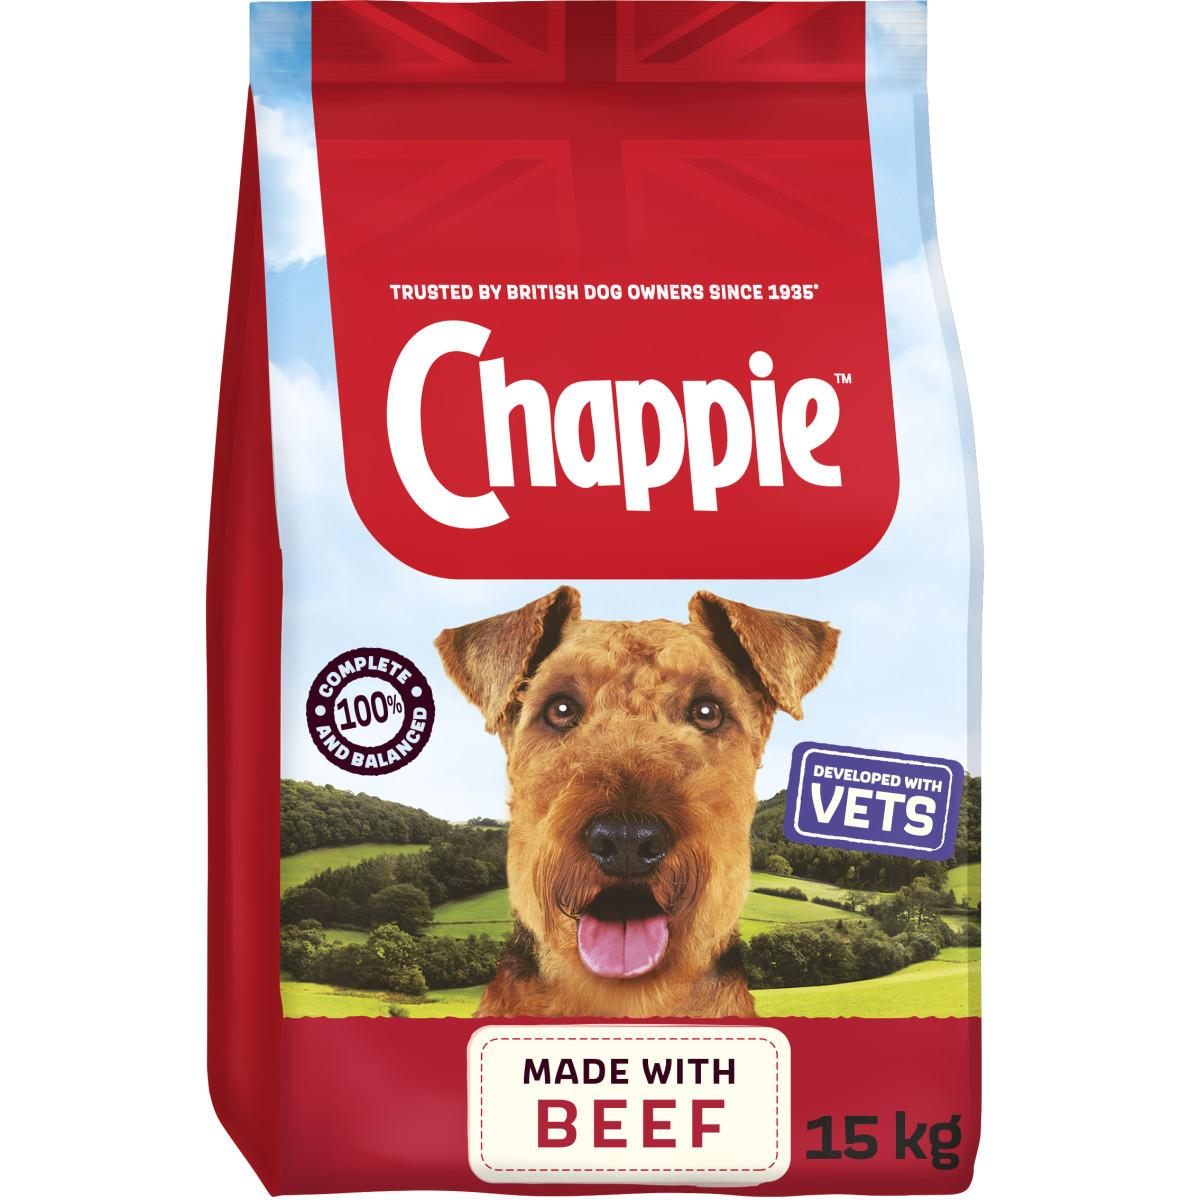 Chappie Beef Dry Dog Food 15kg